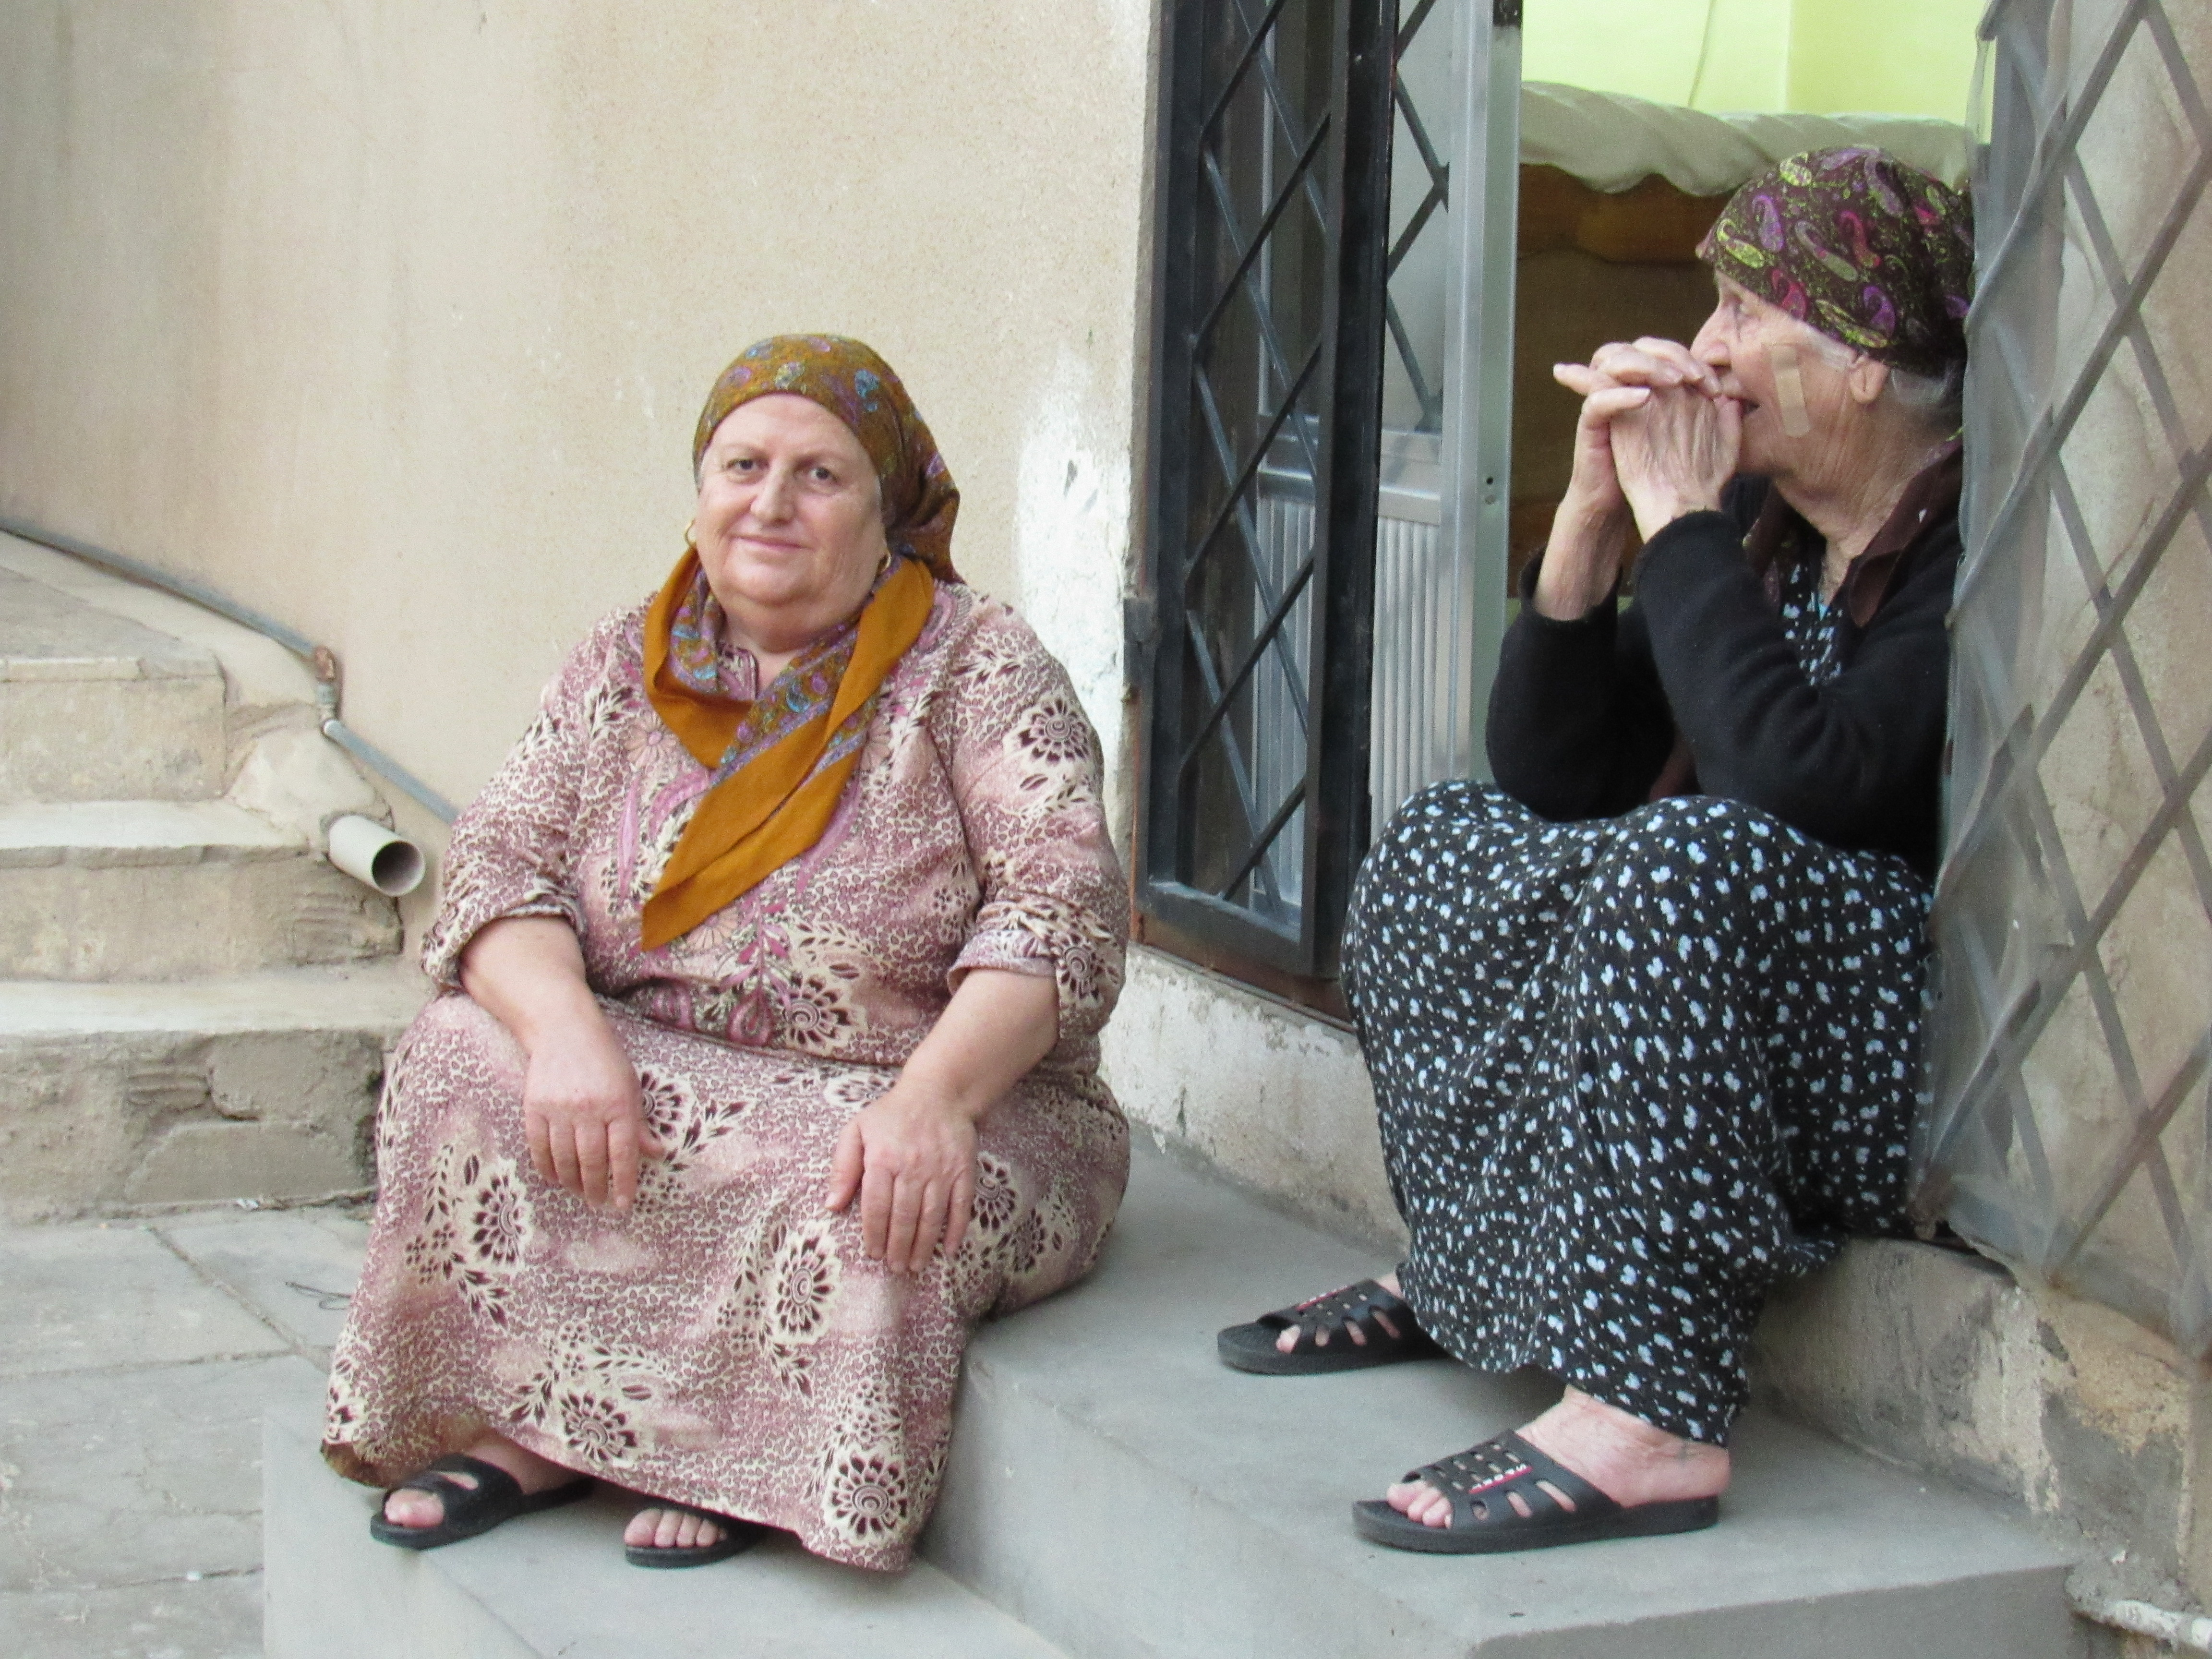 Faces of the Displaced (Adults)